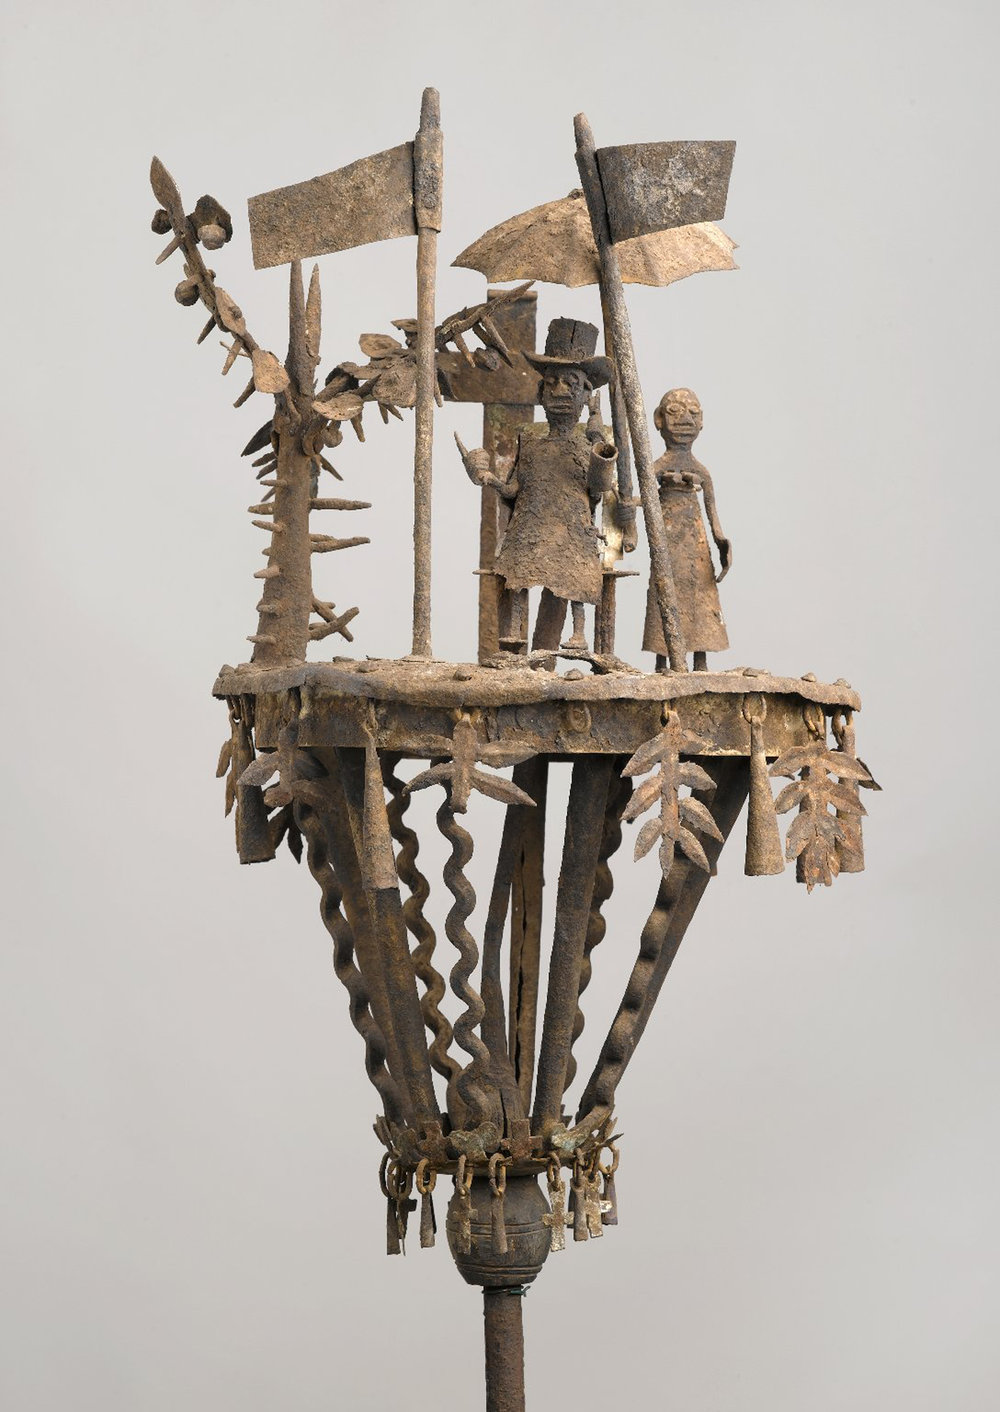 Asen Altar, 19th century. Image by Brooklyn Museum CC BY 3.0